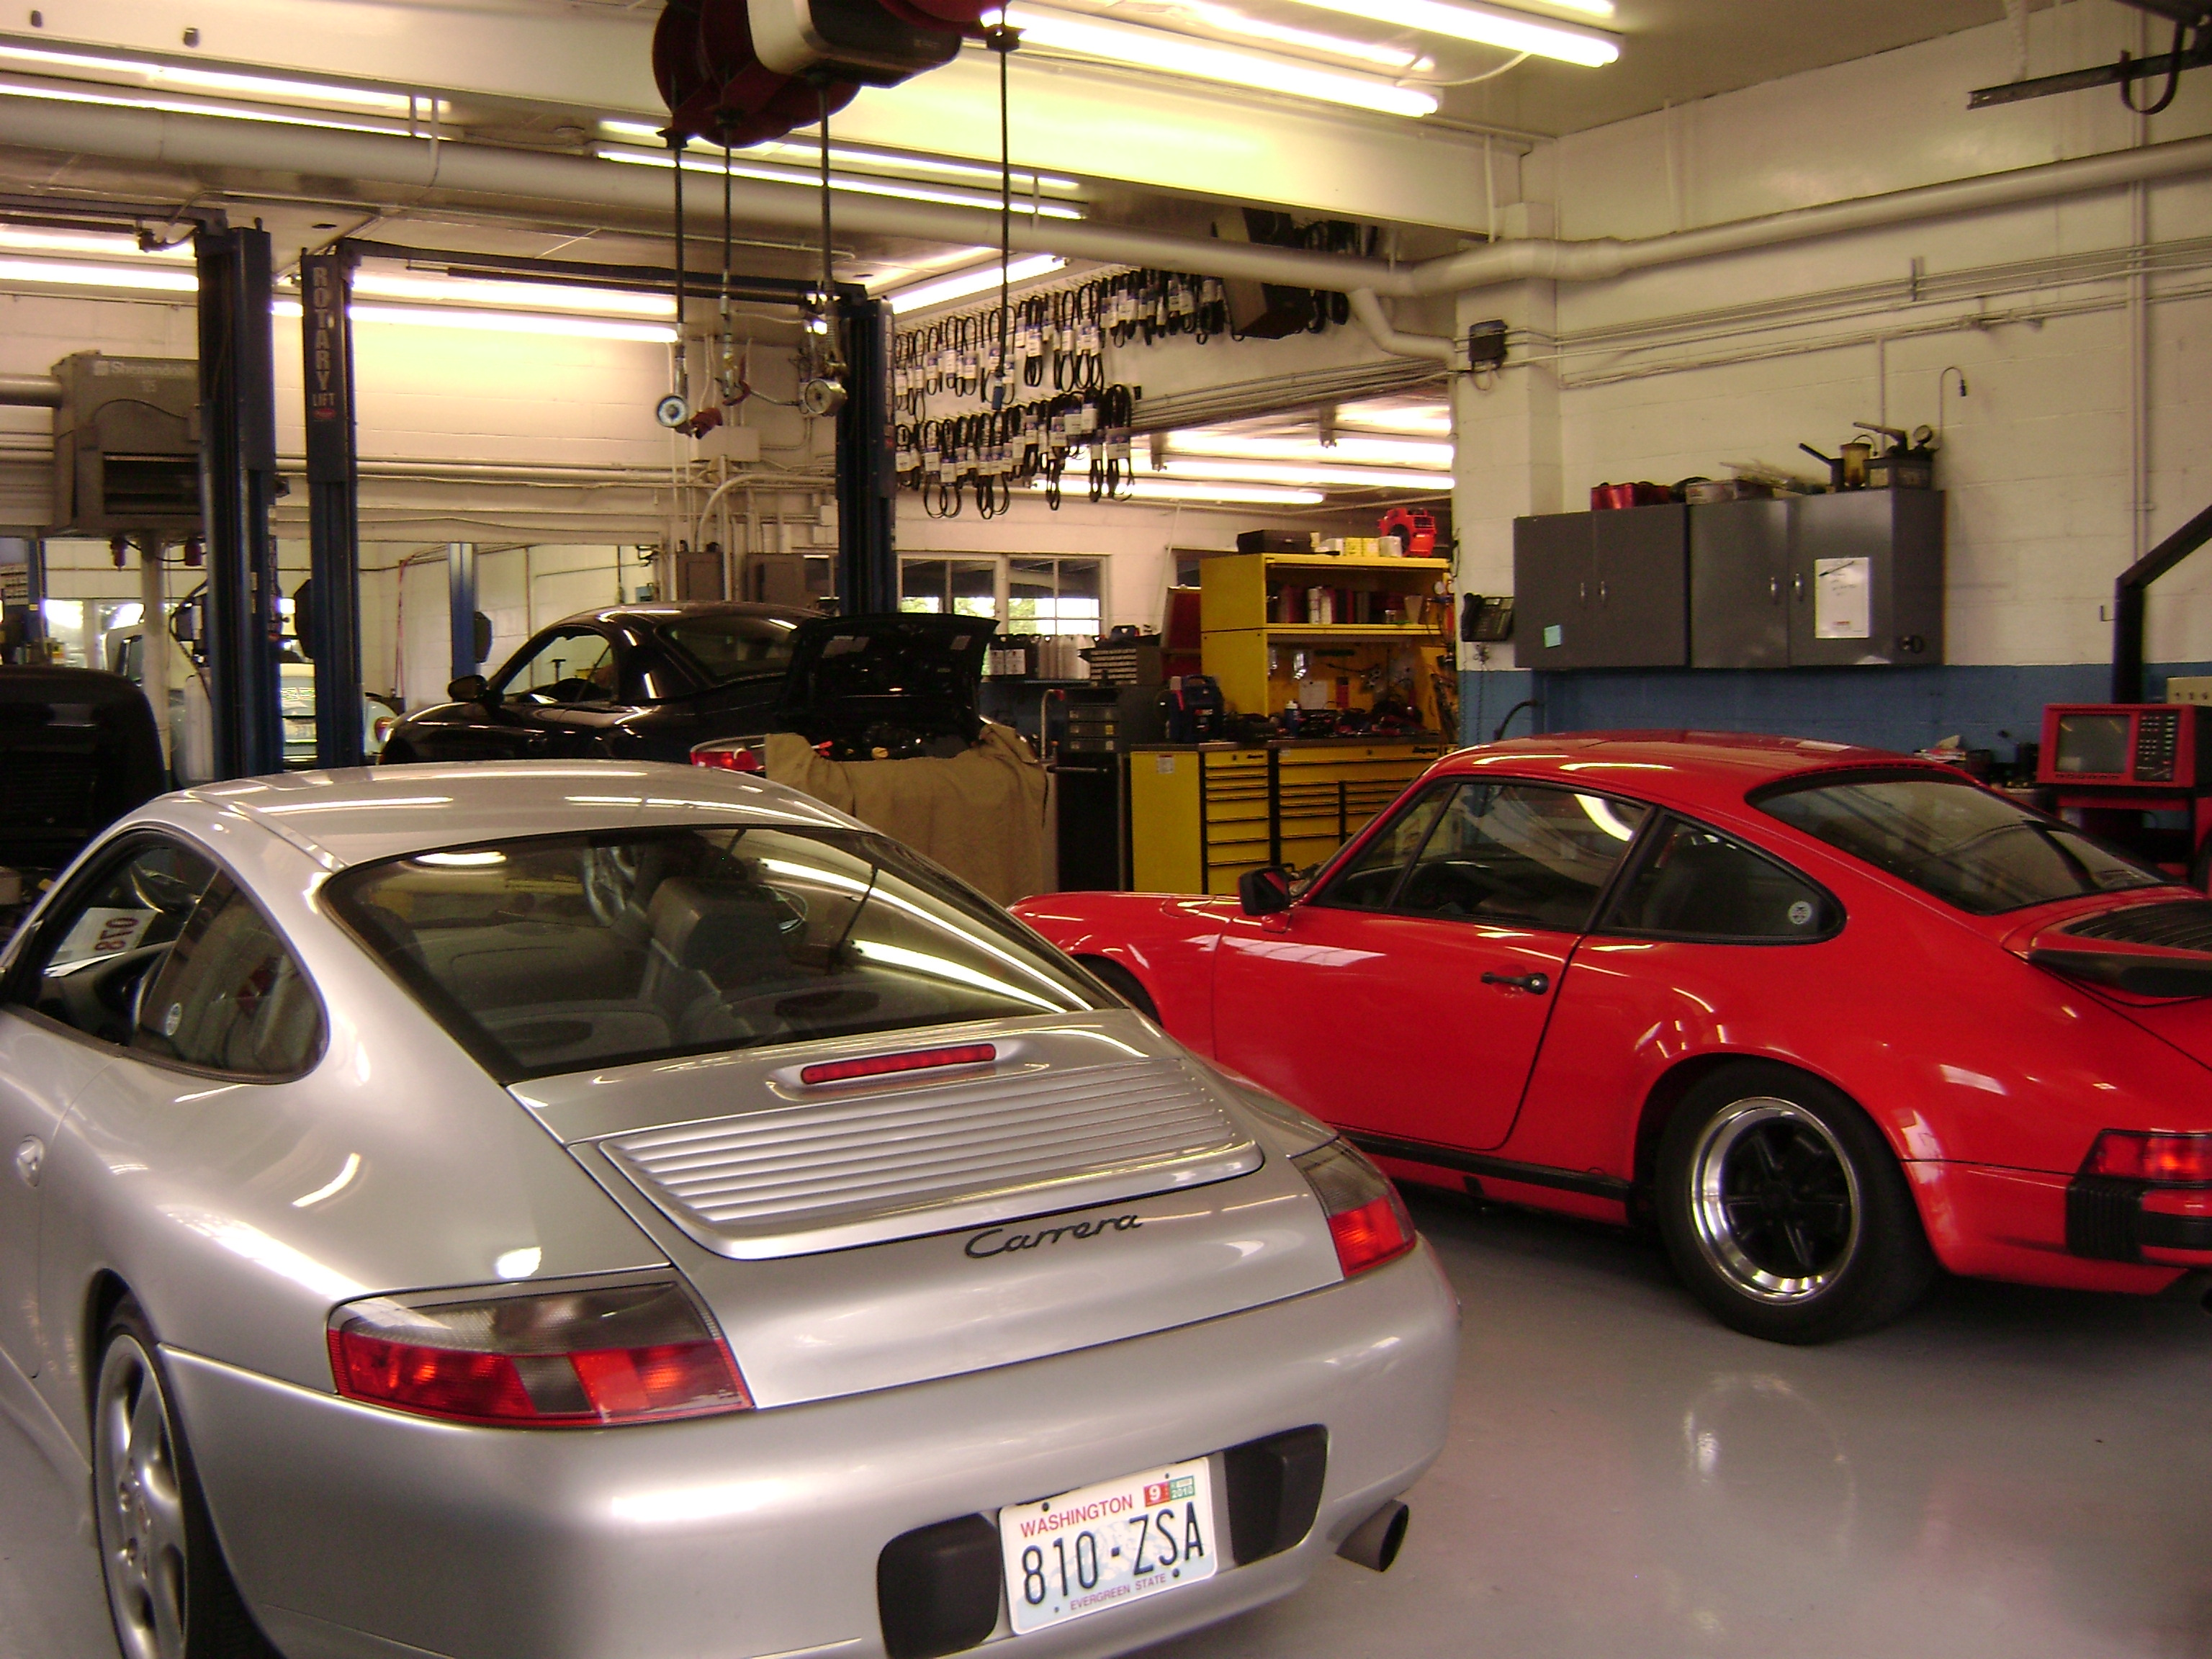 Porsche service & repair shop near Snohomish